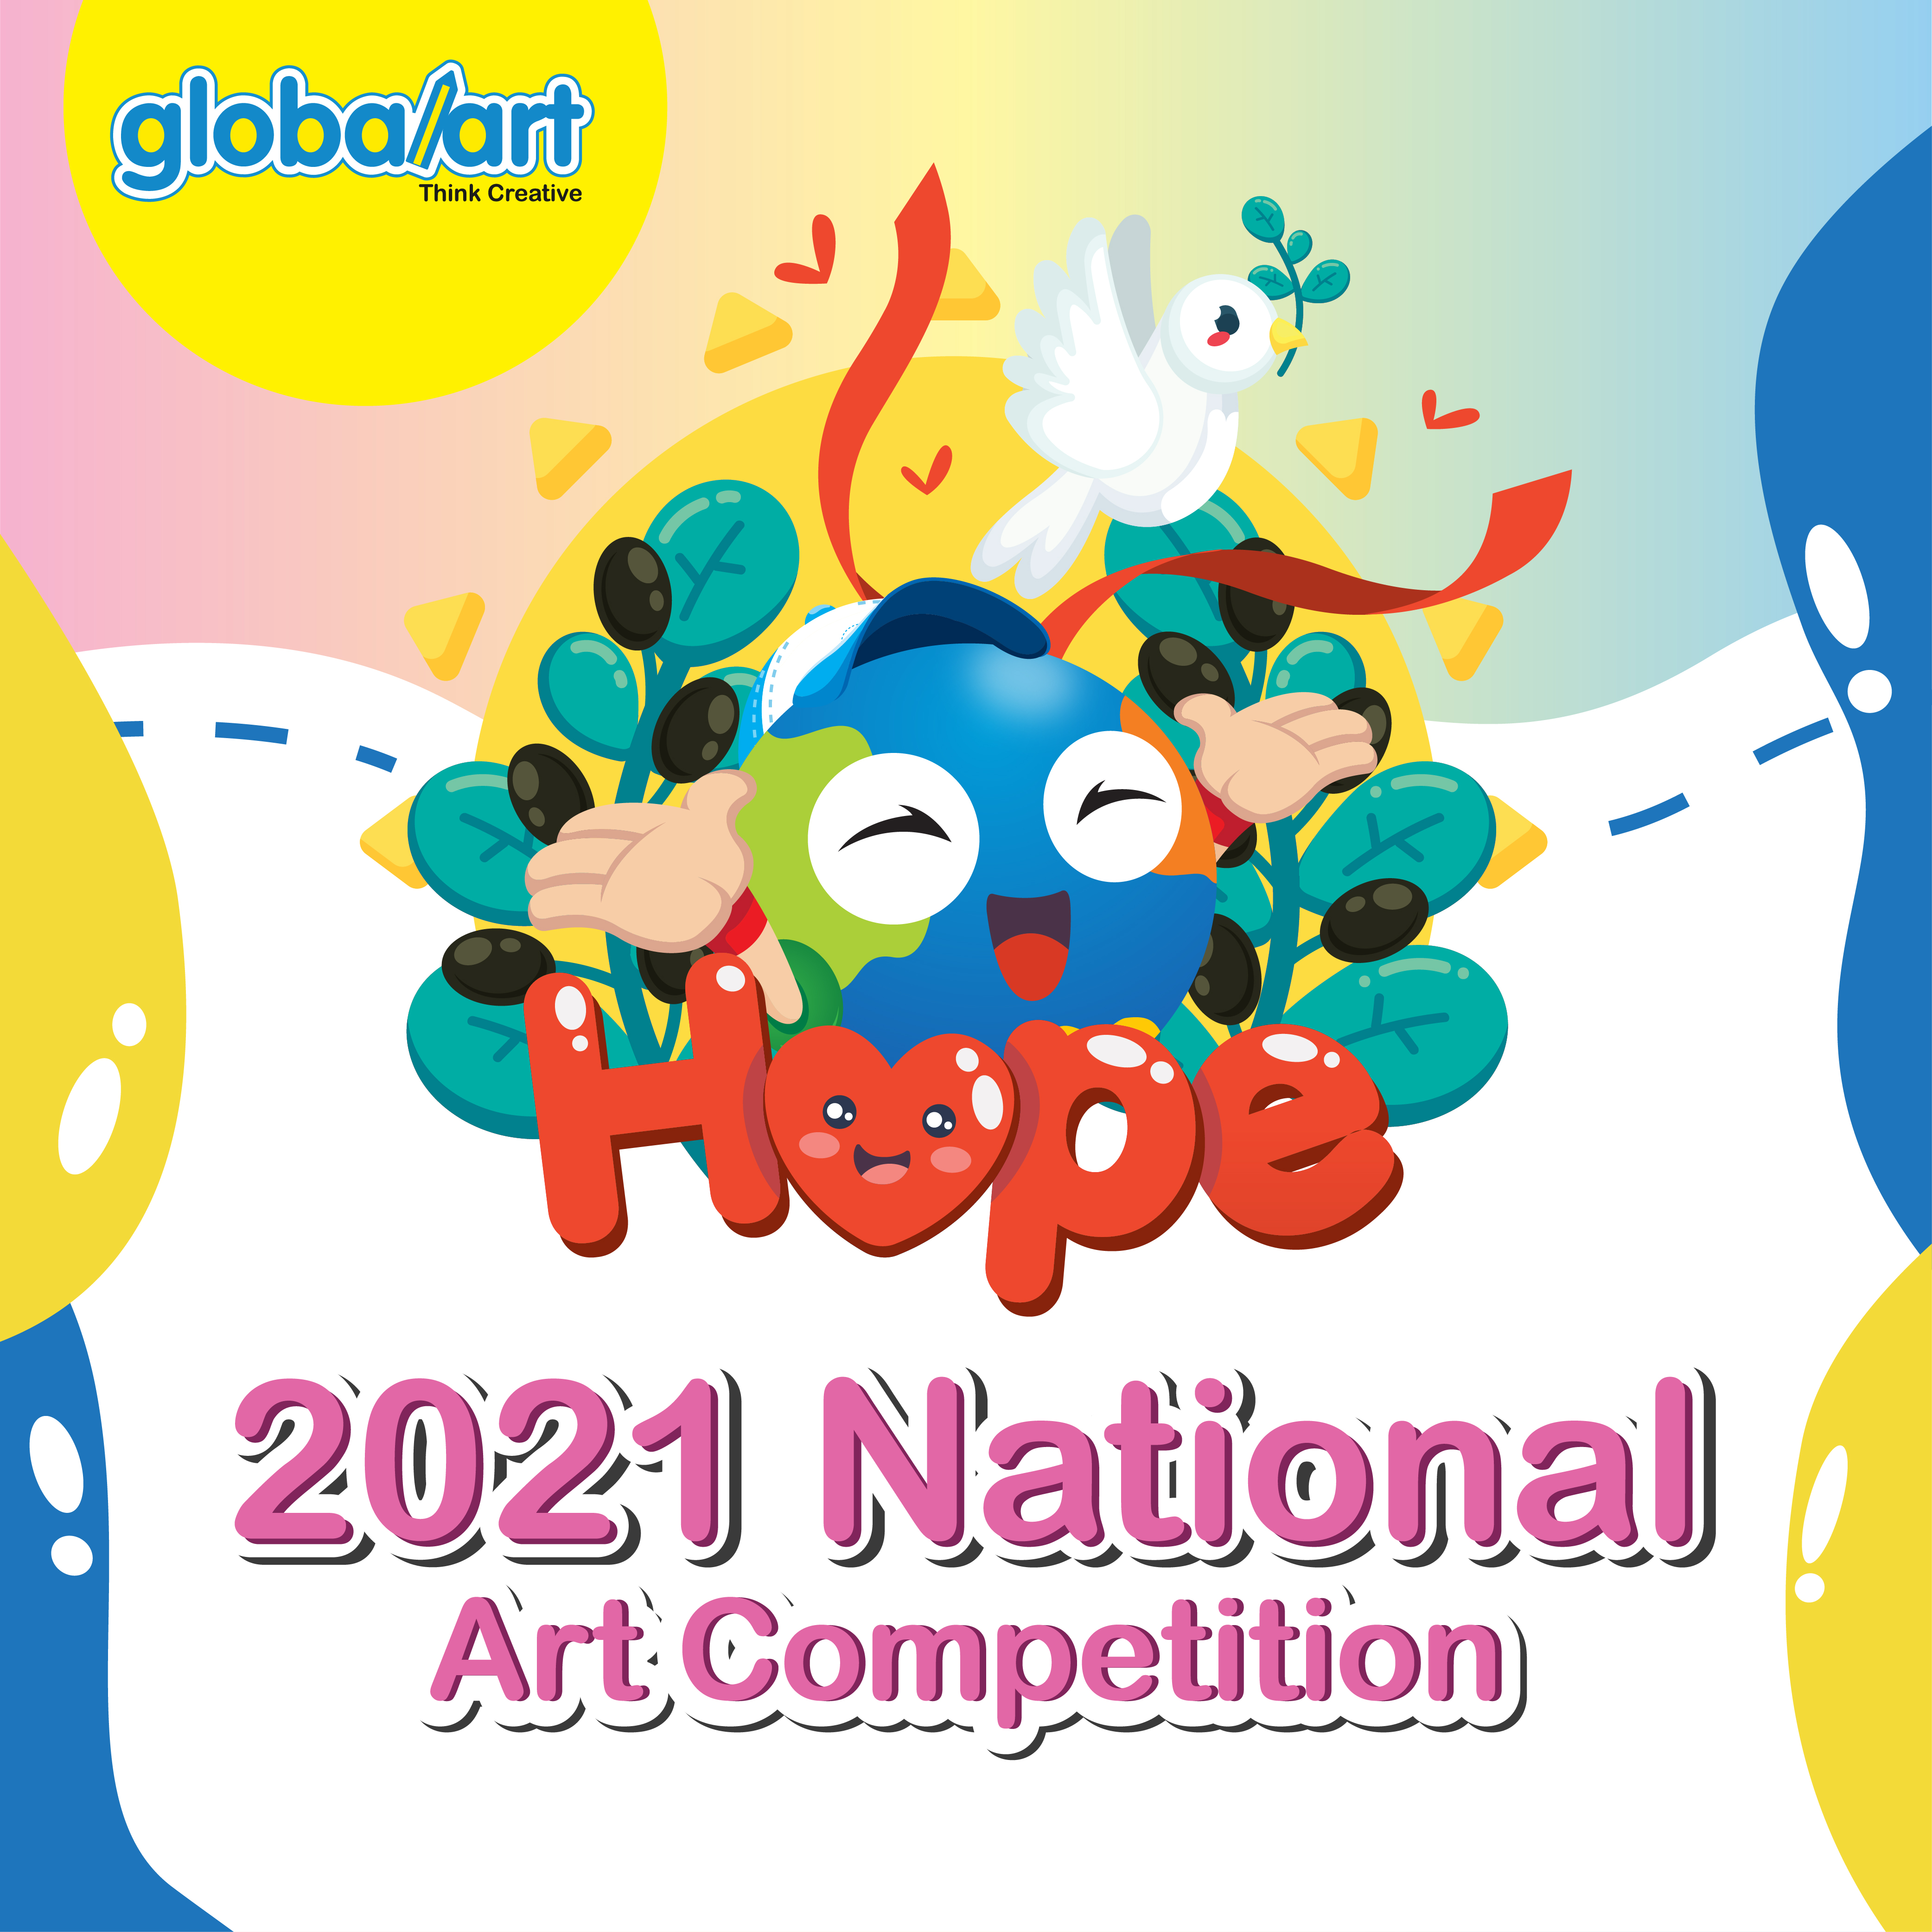 National Art Competition 2021